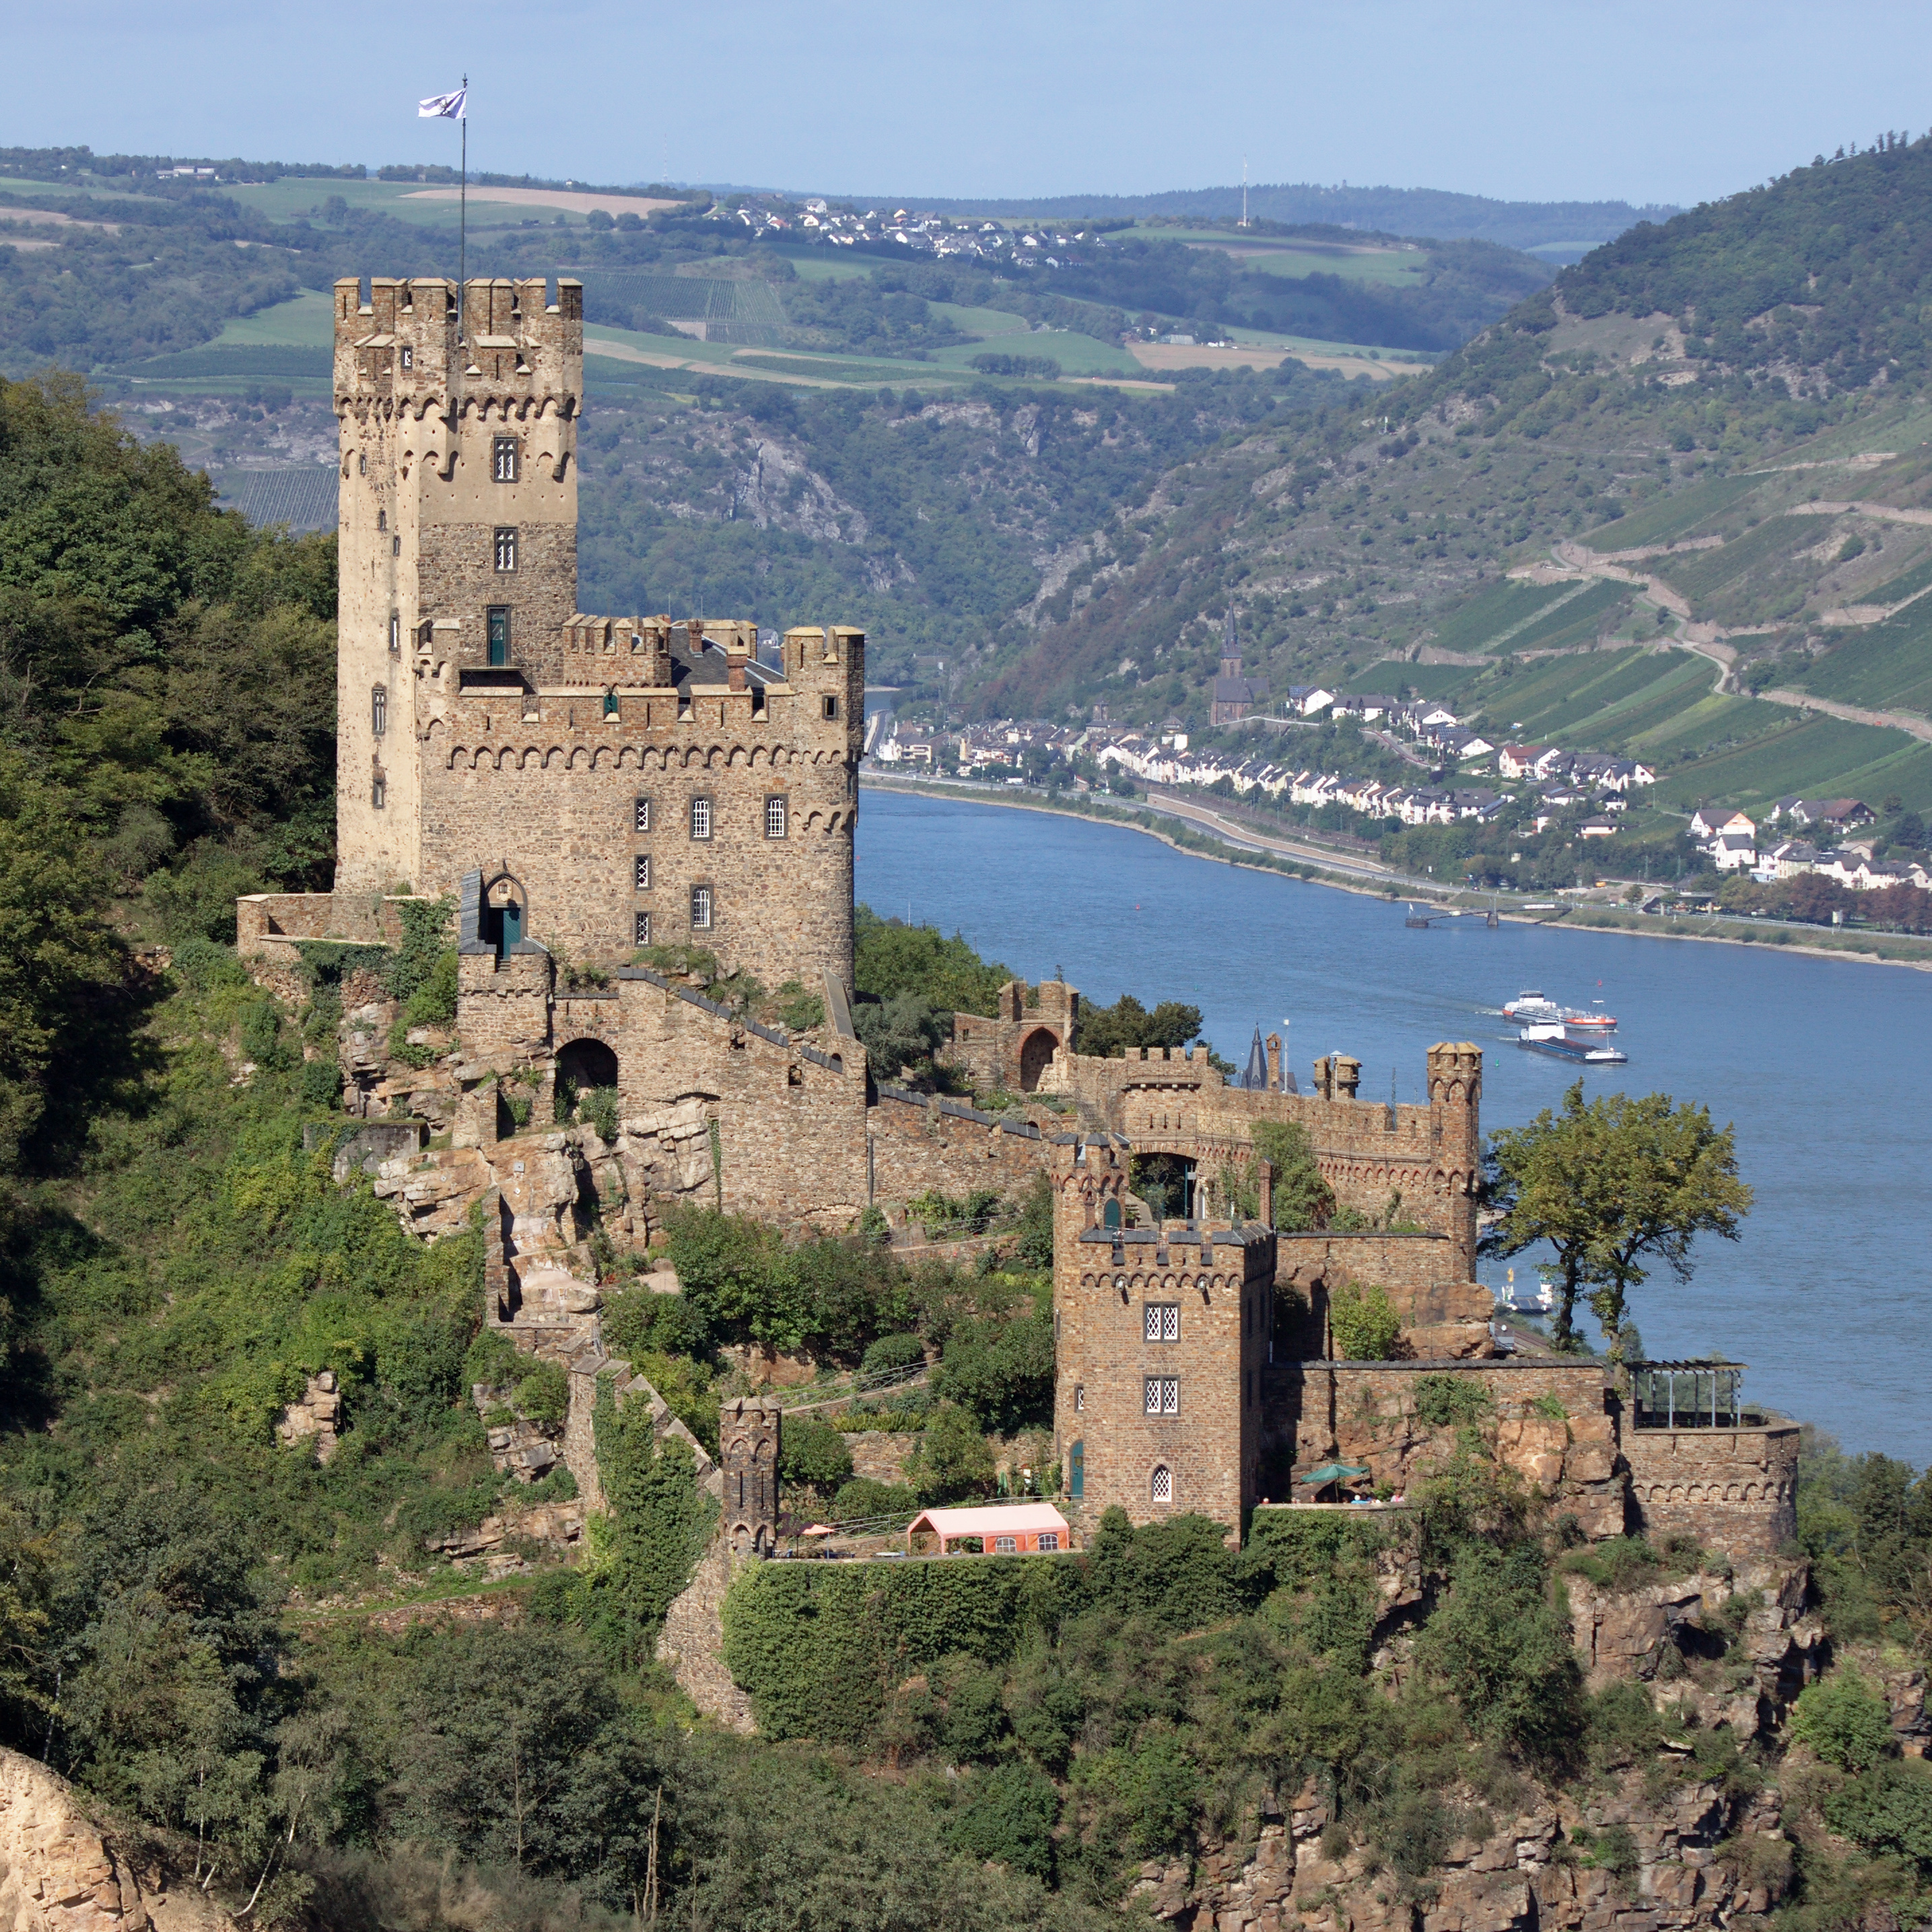 Burg-Sooneck-JR-E-852-2011-09-14